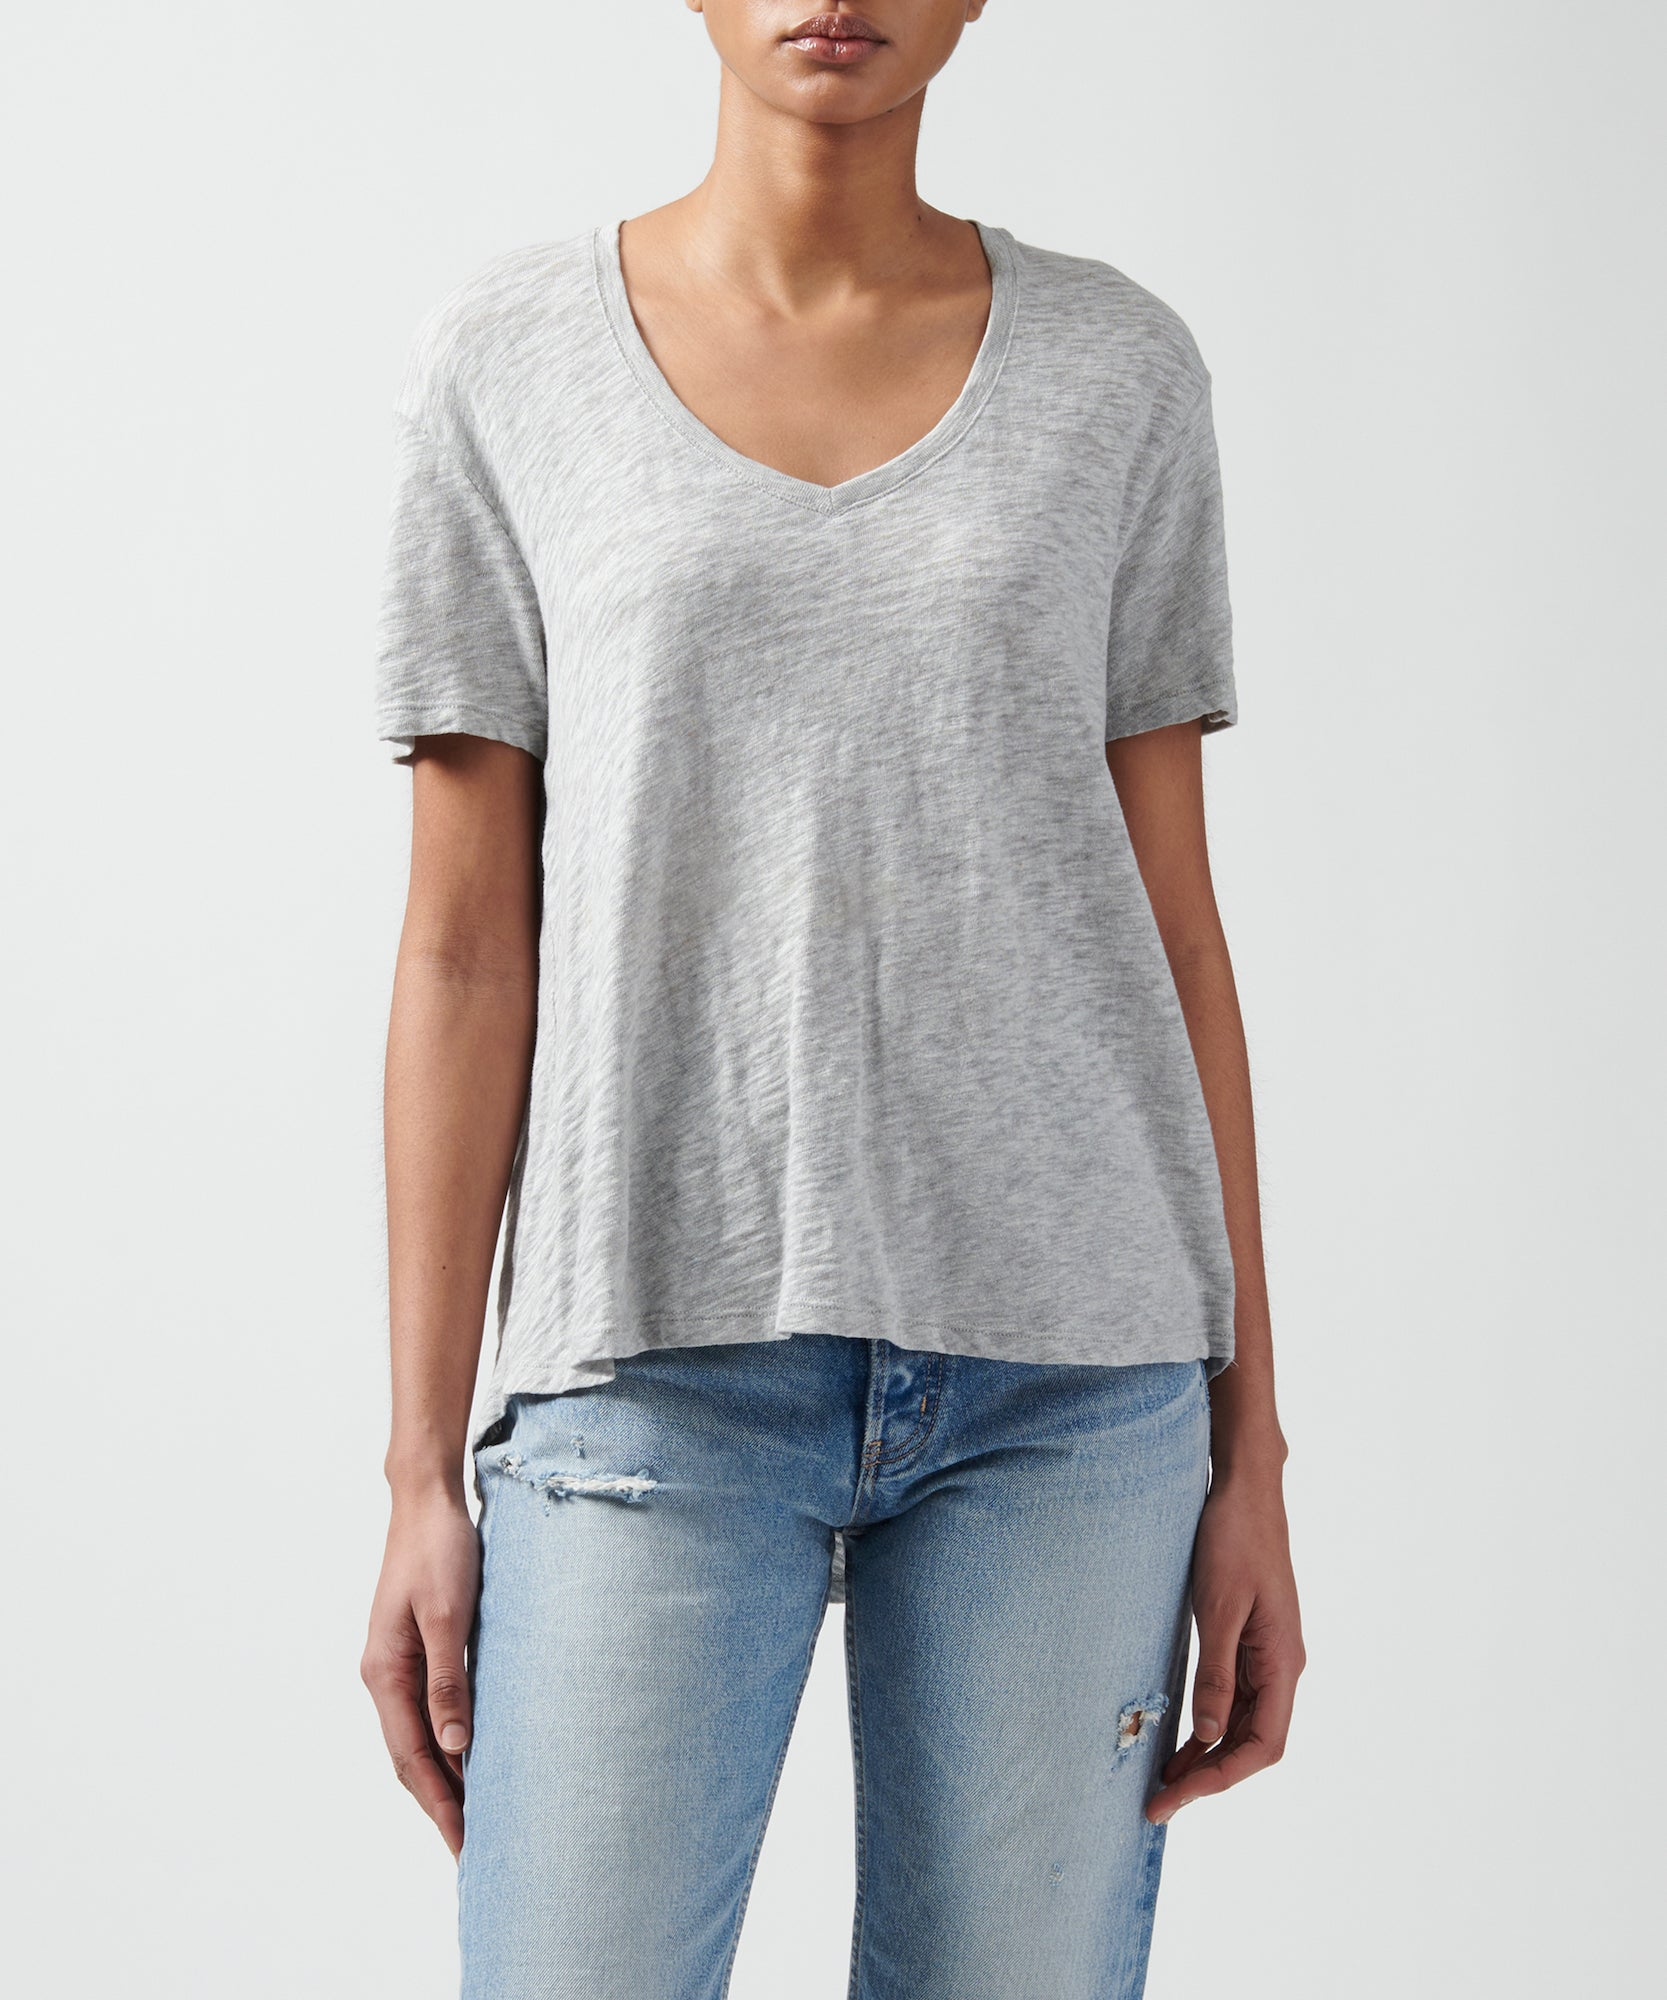 Heather Grey Slub Jersey Boyfriend V-Neck Tee - Women's Cotton Short Sleeve Tee by ATM Anthony Thomas Melillo